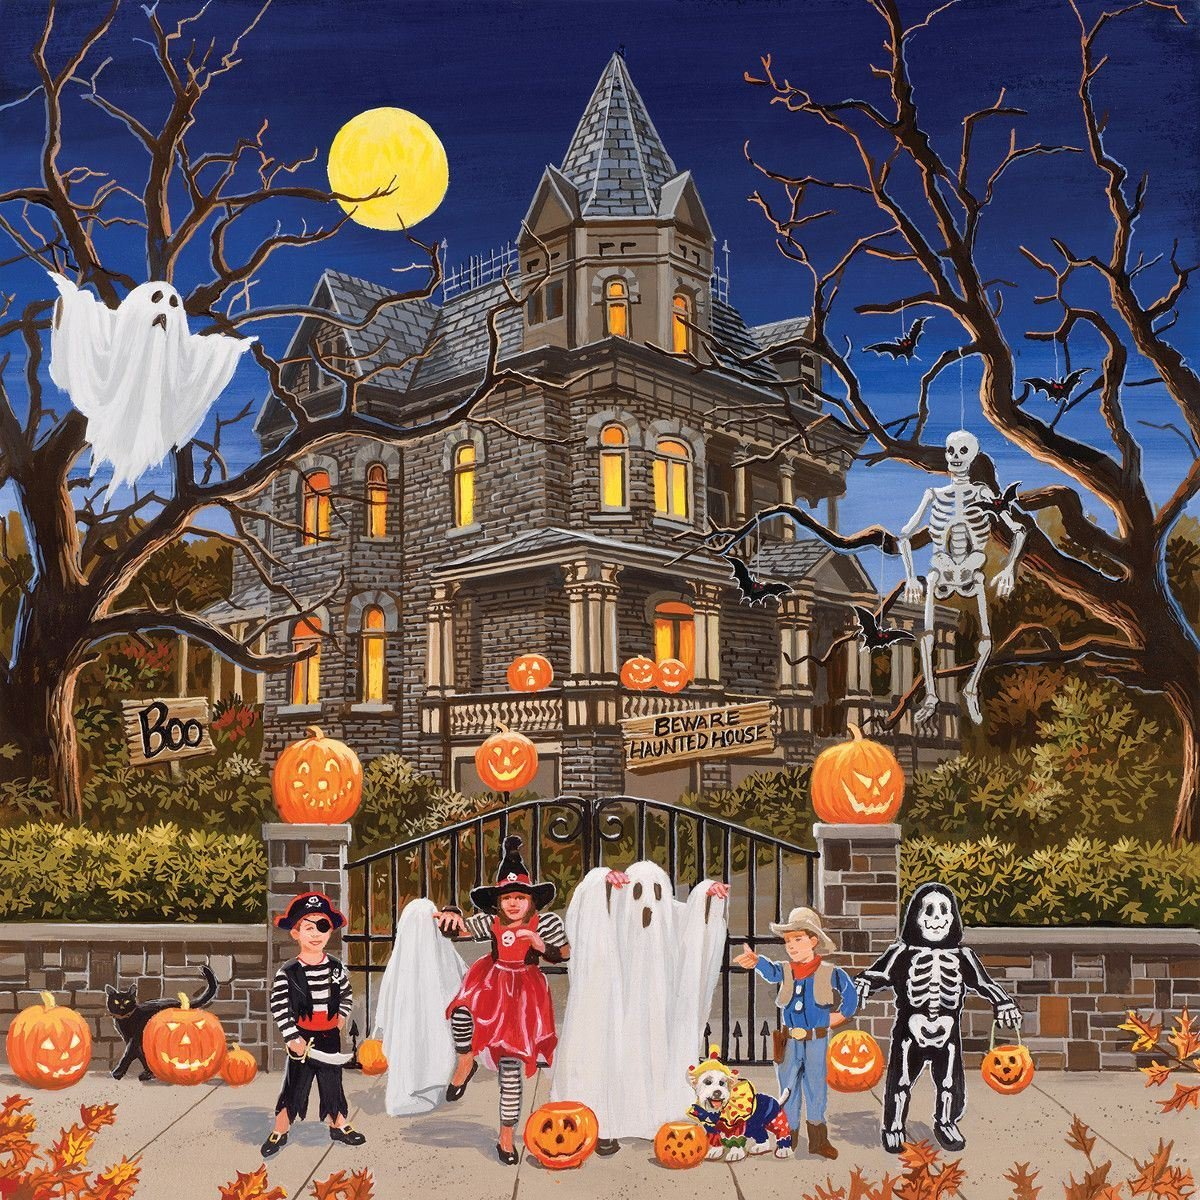 Fall Feather Wood Wallpaper Beware Haunted House Puzzle By William Vanderdasson For